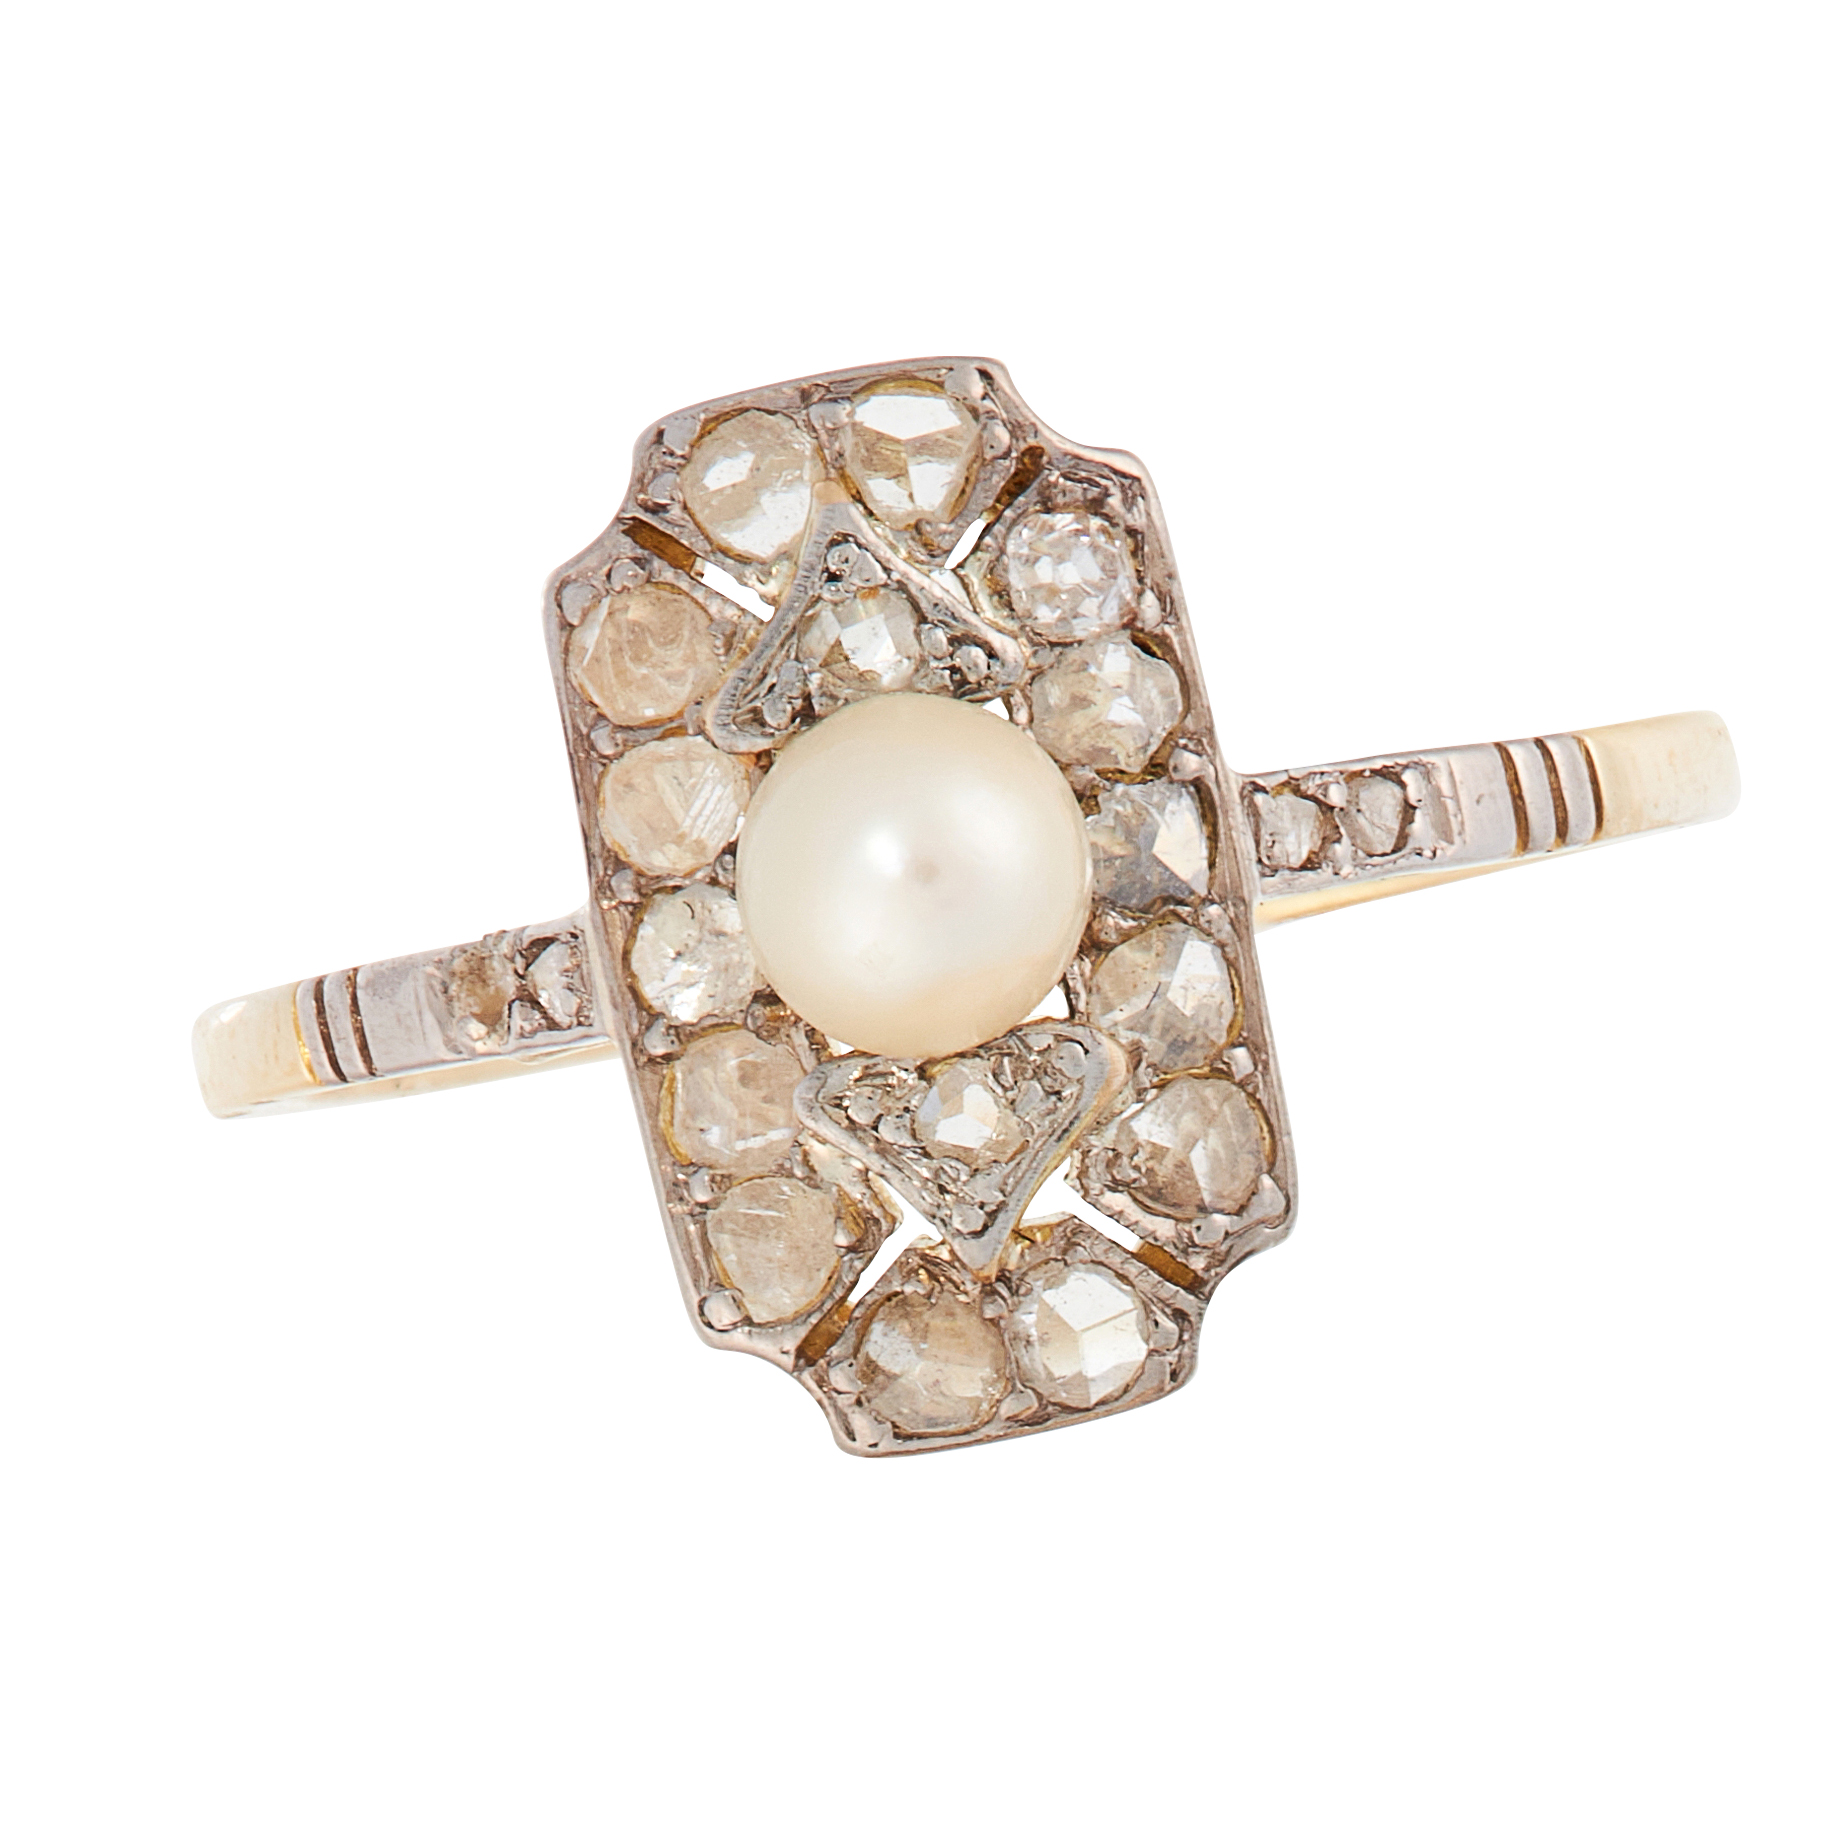 AN ART DECO PEARL AND DIAMOND DRESS RING, CIRCA 1925 in high carat yellow gold, the face set with